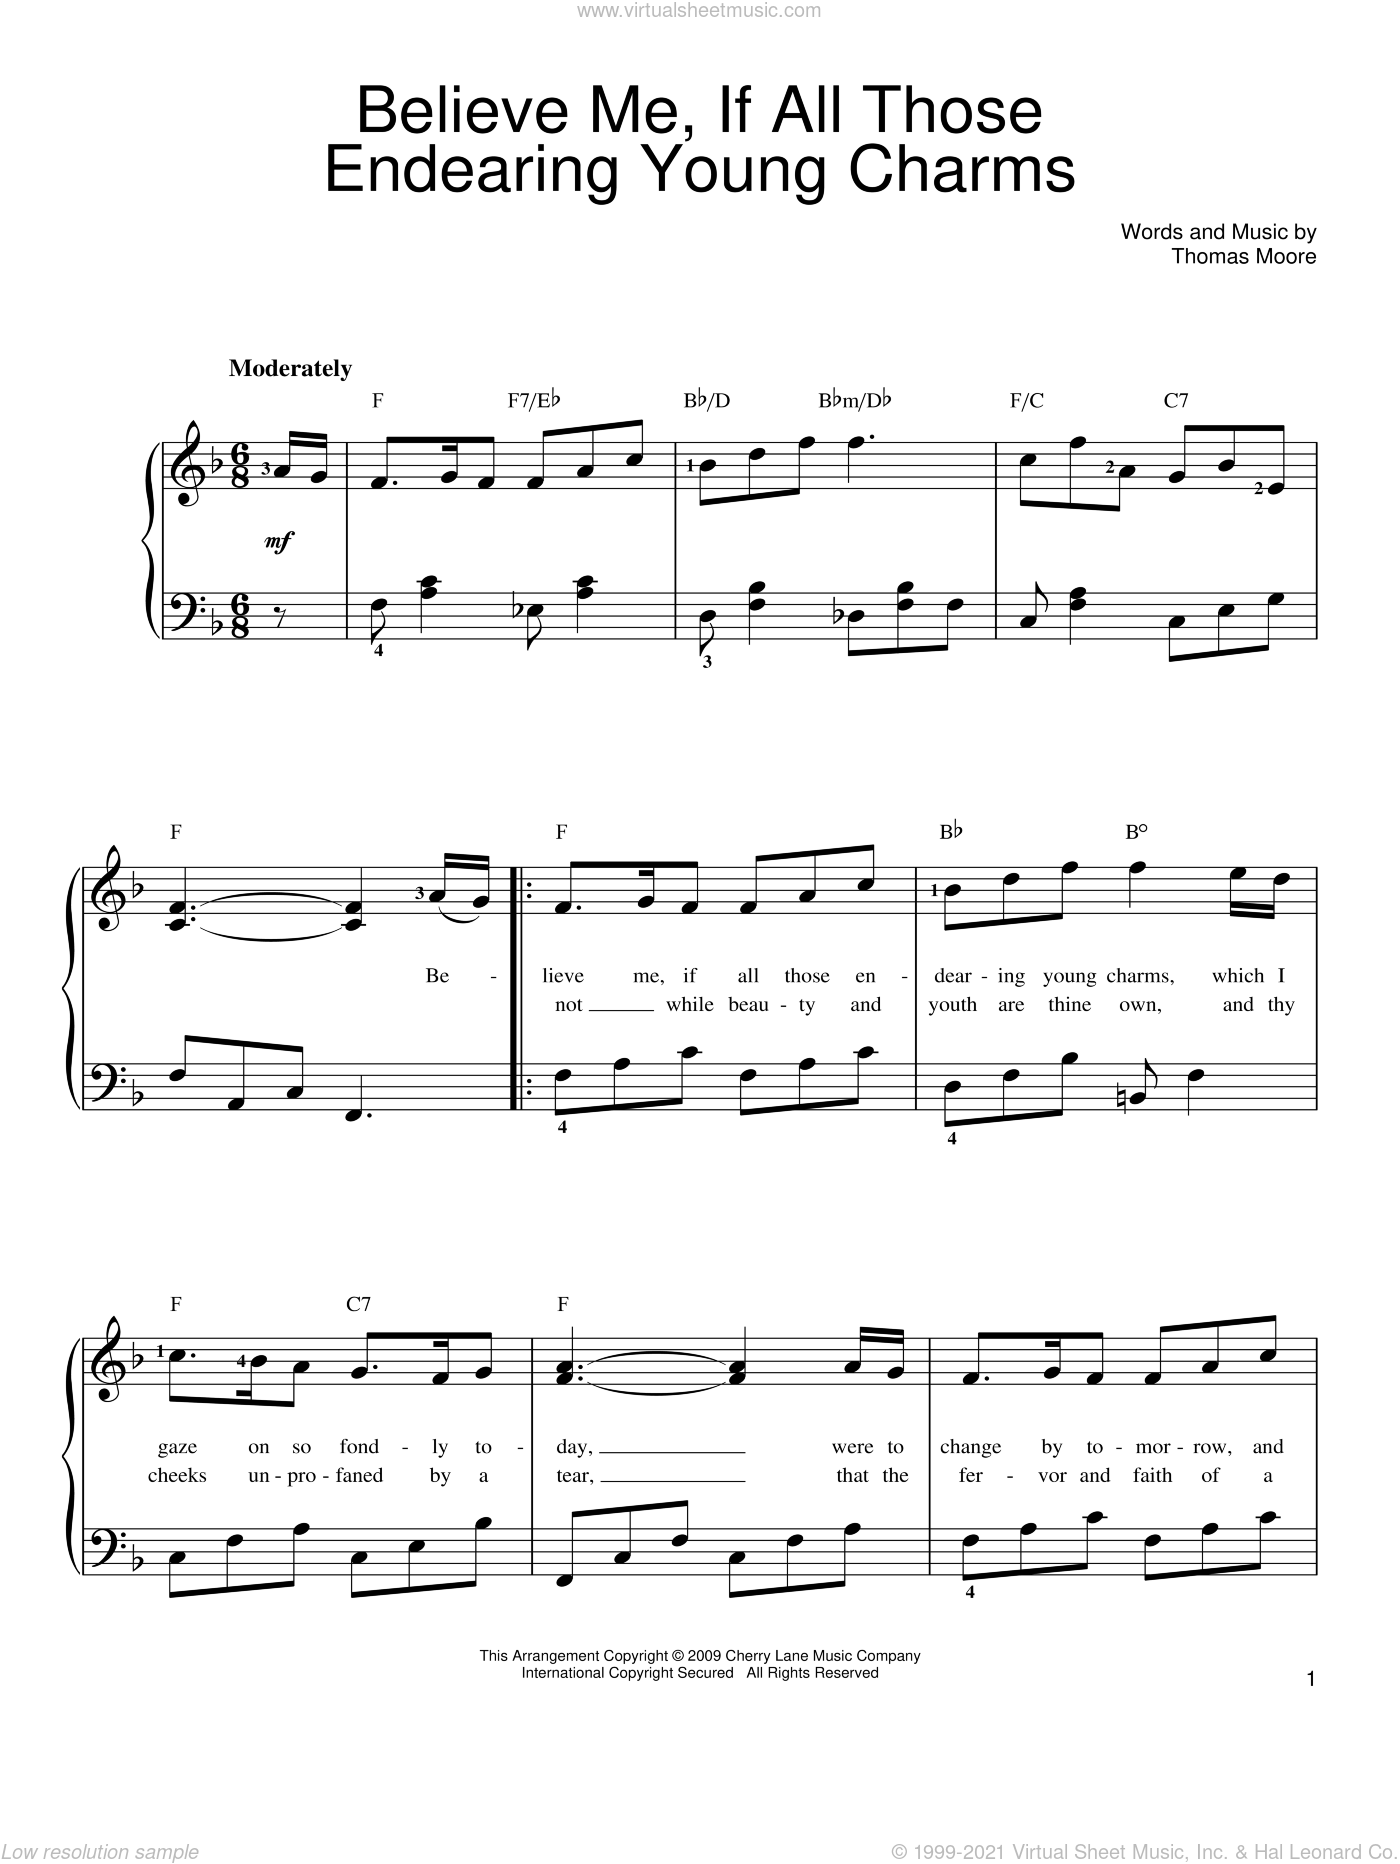 Believe Me, If All Those Endearing Young Charms sheet music for piano solo by Thomas Moore